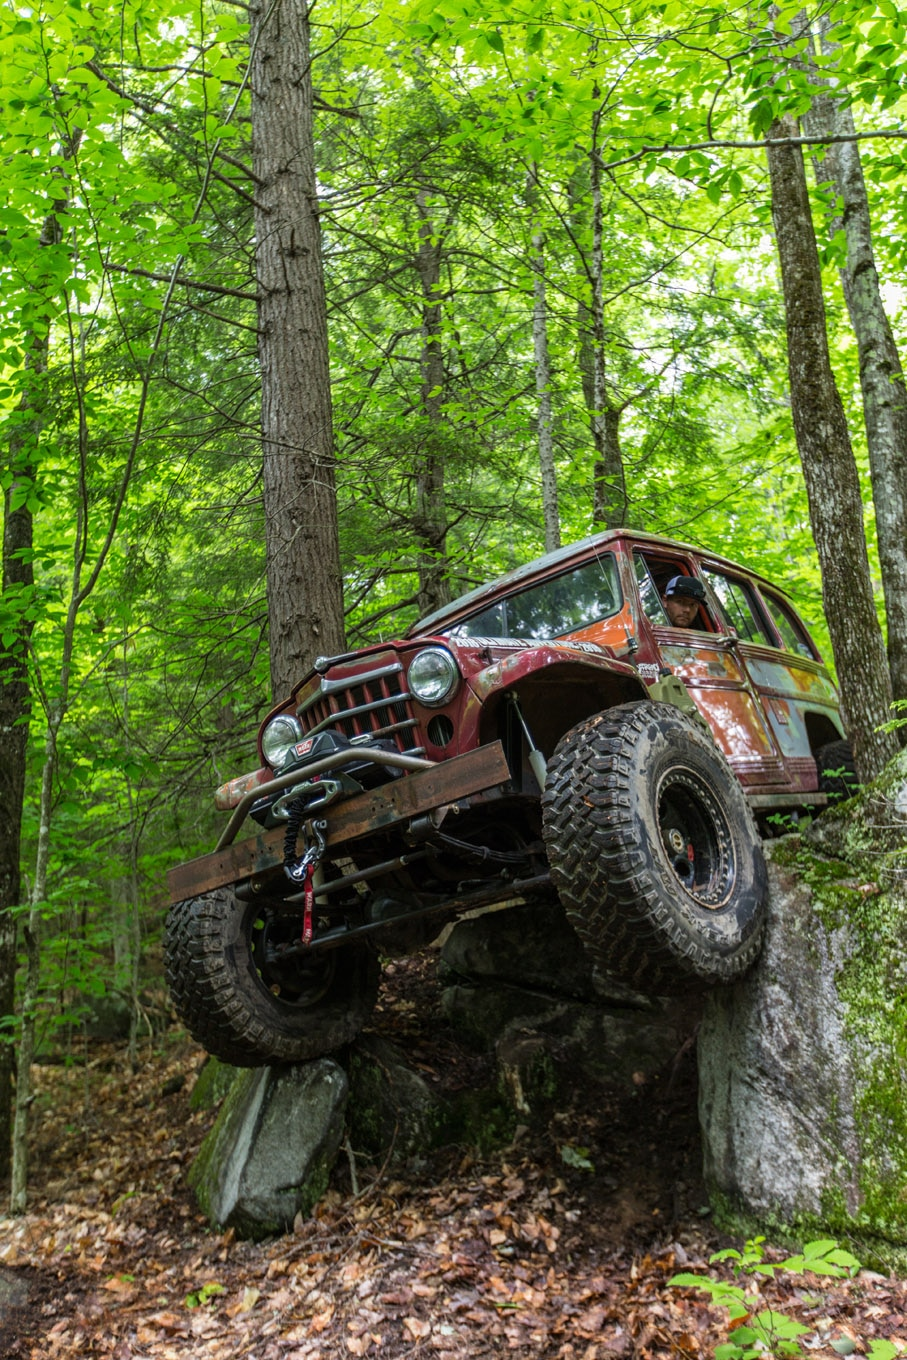 The trails in Bethel, Maine, got technical right off the bat. Despite this steep drop between two trees, Rick Prater managed to keep the body of his Willys Wagon clean on the UA. Wheelbase was your friend on this obstacle, but your enemy elsewhere on this super-tight and twisty trail that meandered over big boulders and through tight tree squeezes. It was epic!